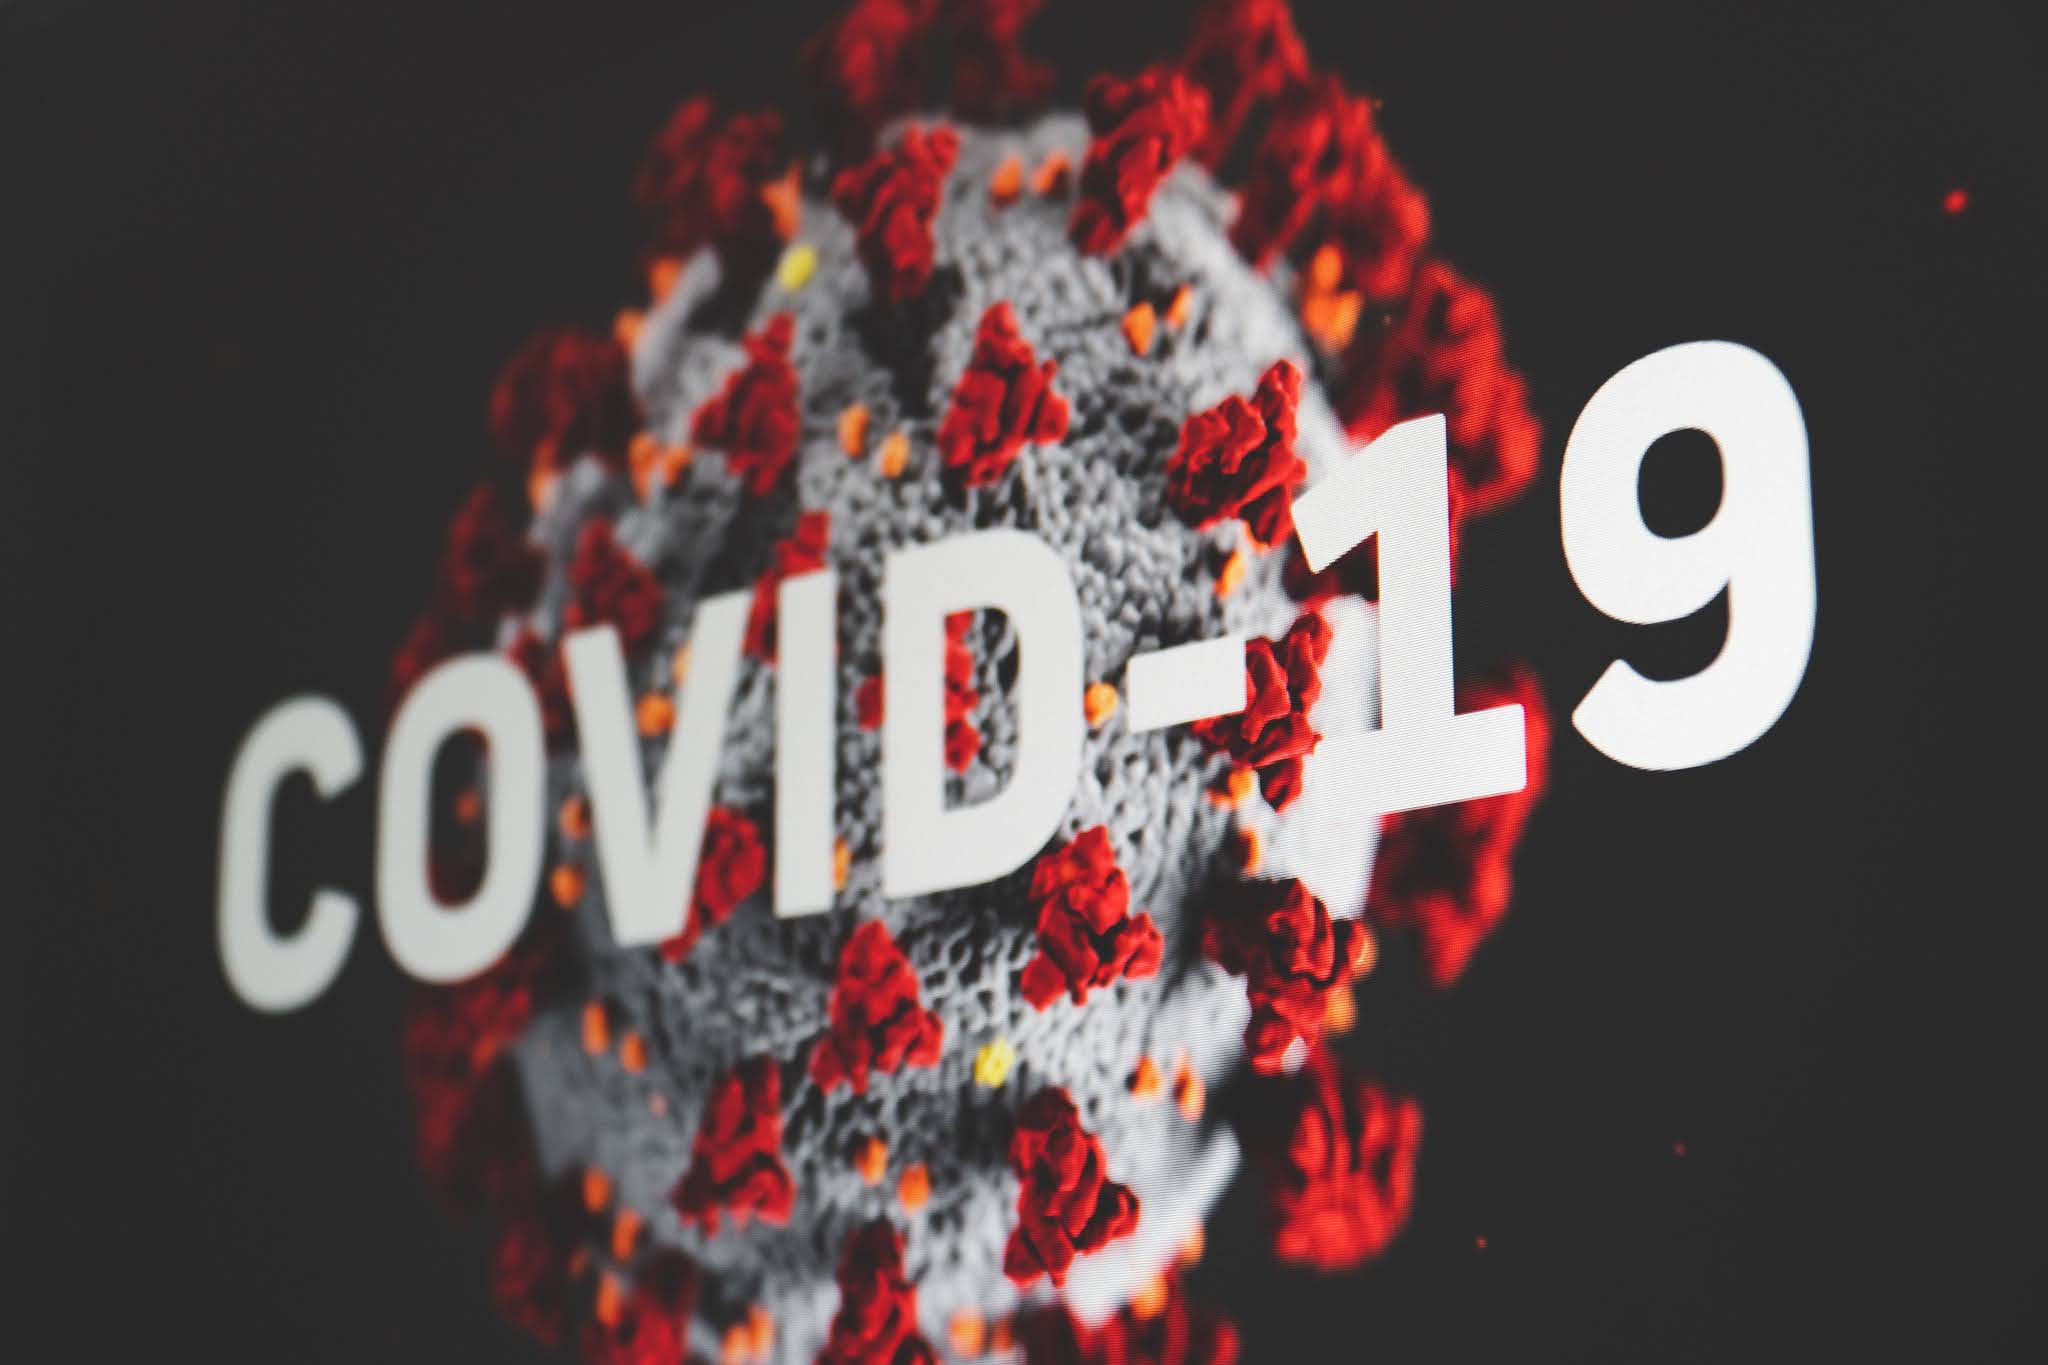 Novel Corona Virus 2020 HD images (Practice social distance and stay home)